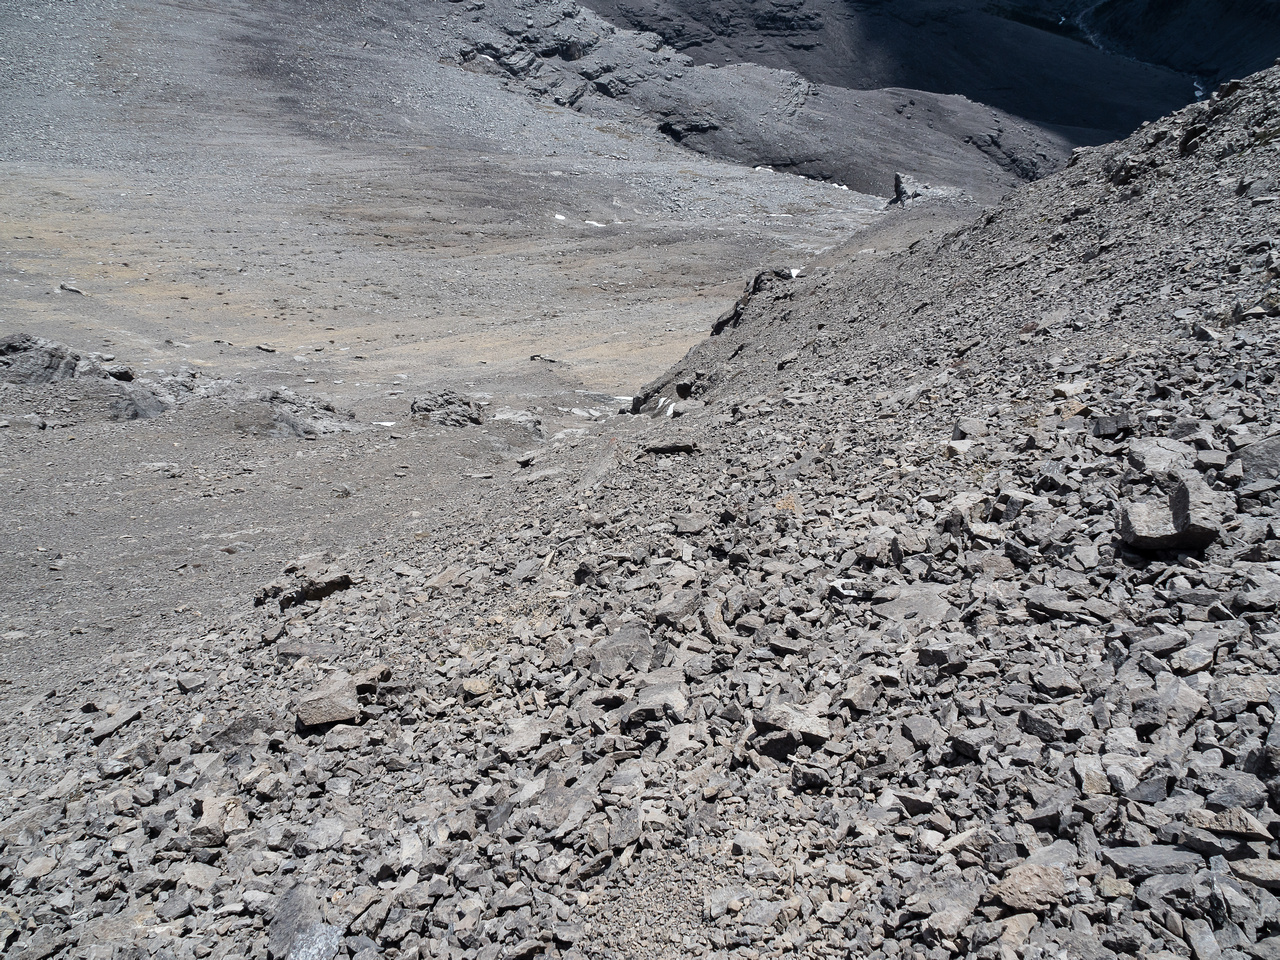 Looking down the scree bowl.